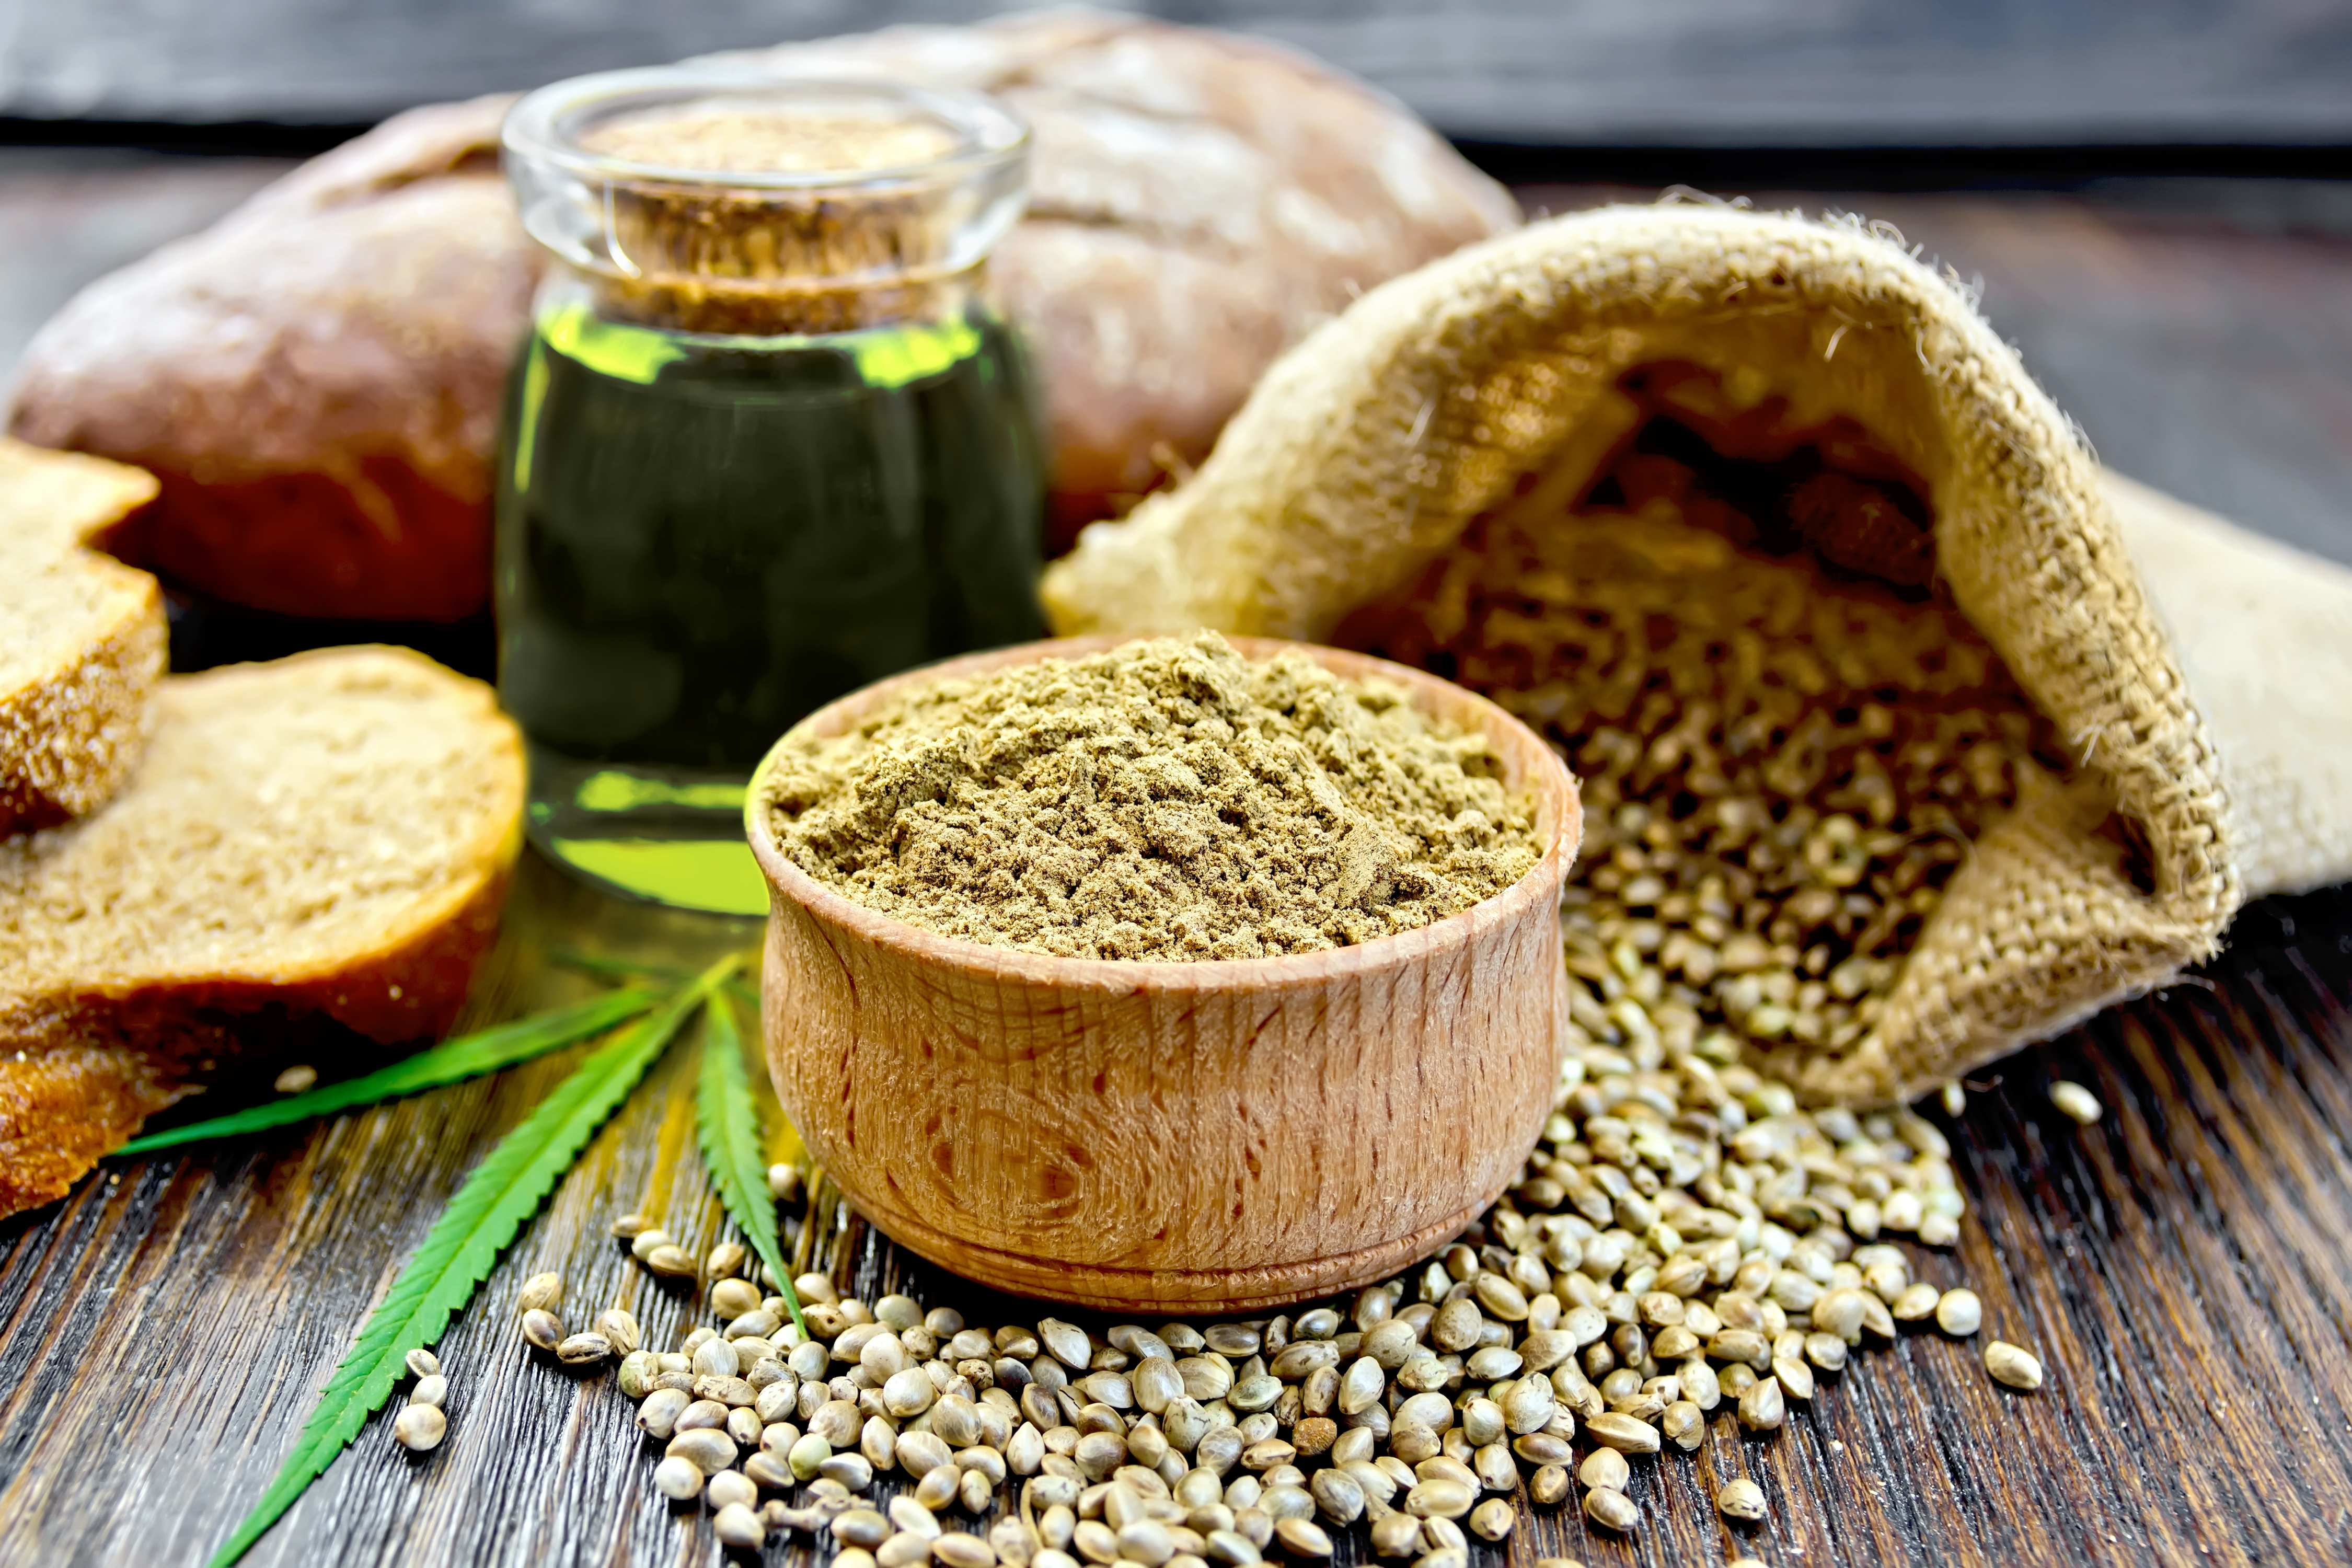 A bowl of hemp seeds and cbd oil used for helping patients